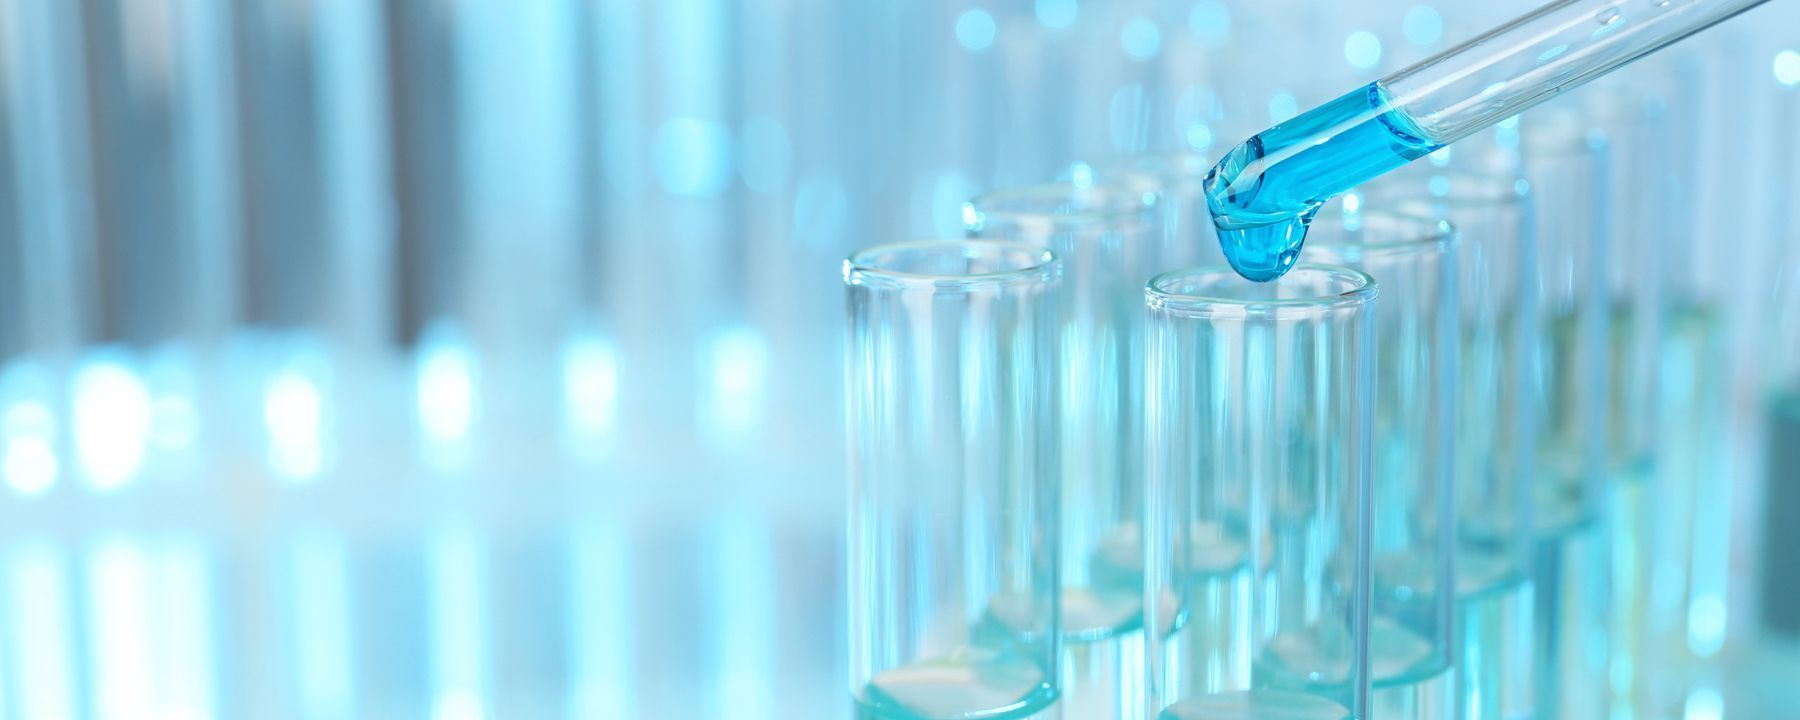 Potential Causes of Irreproducibility Revealed